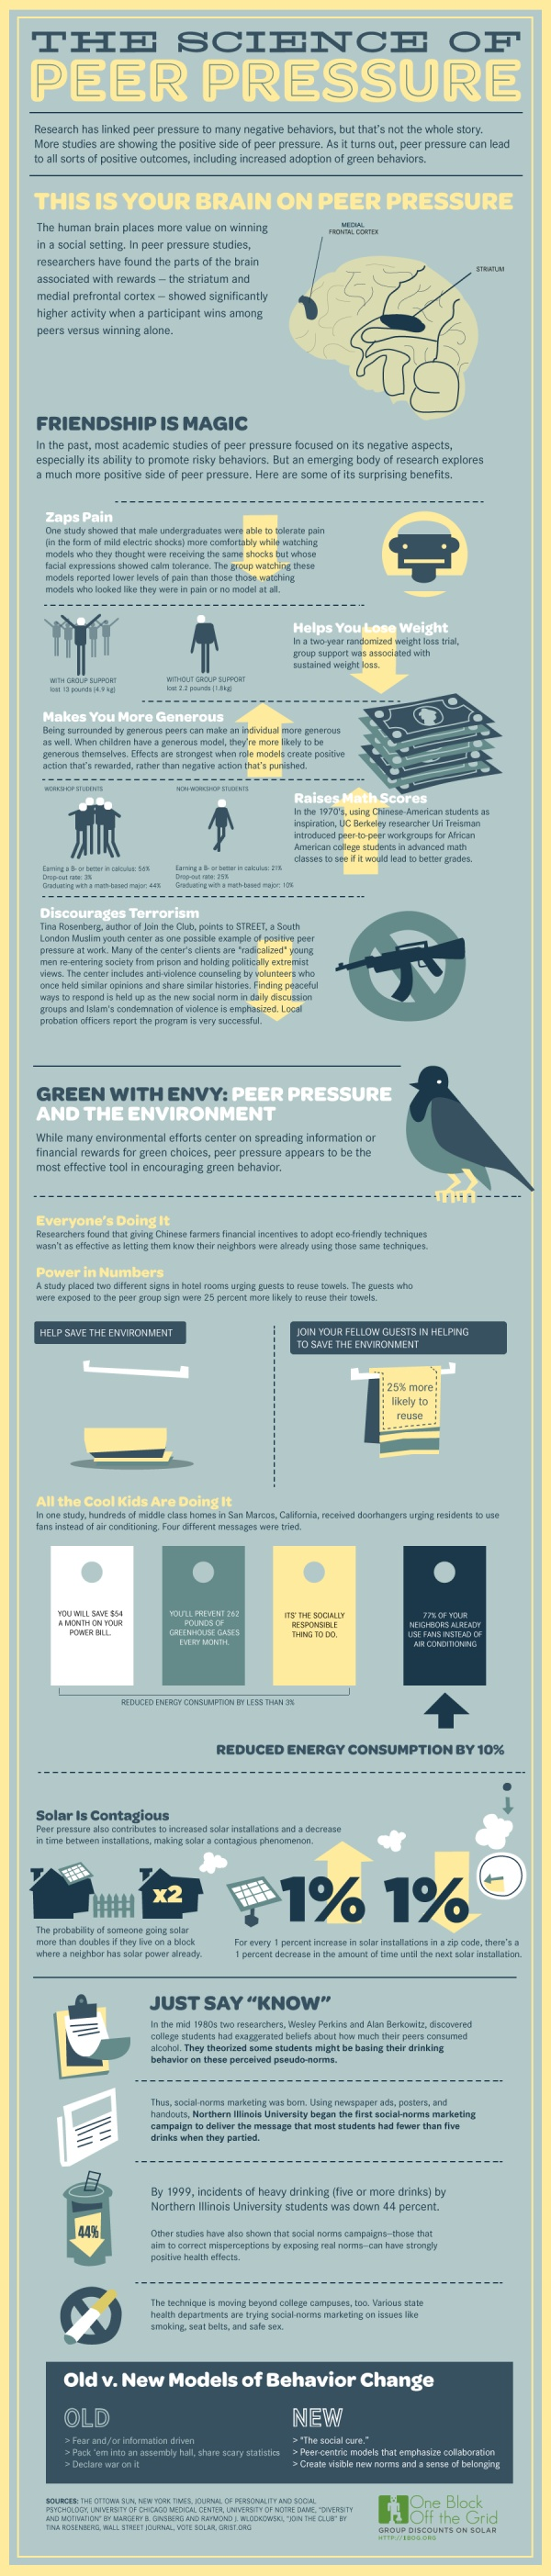 Science Of Peer Pressure & Its Effects On The Brain Infographic Infographic